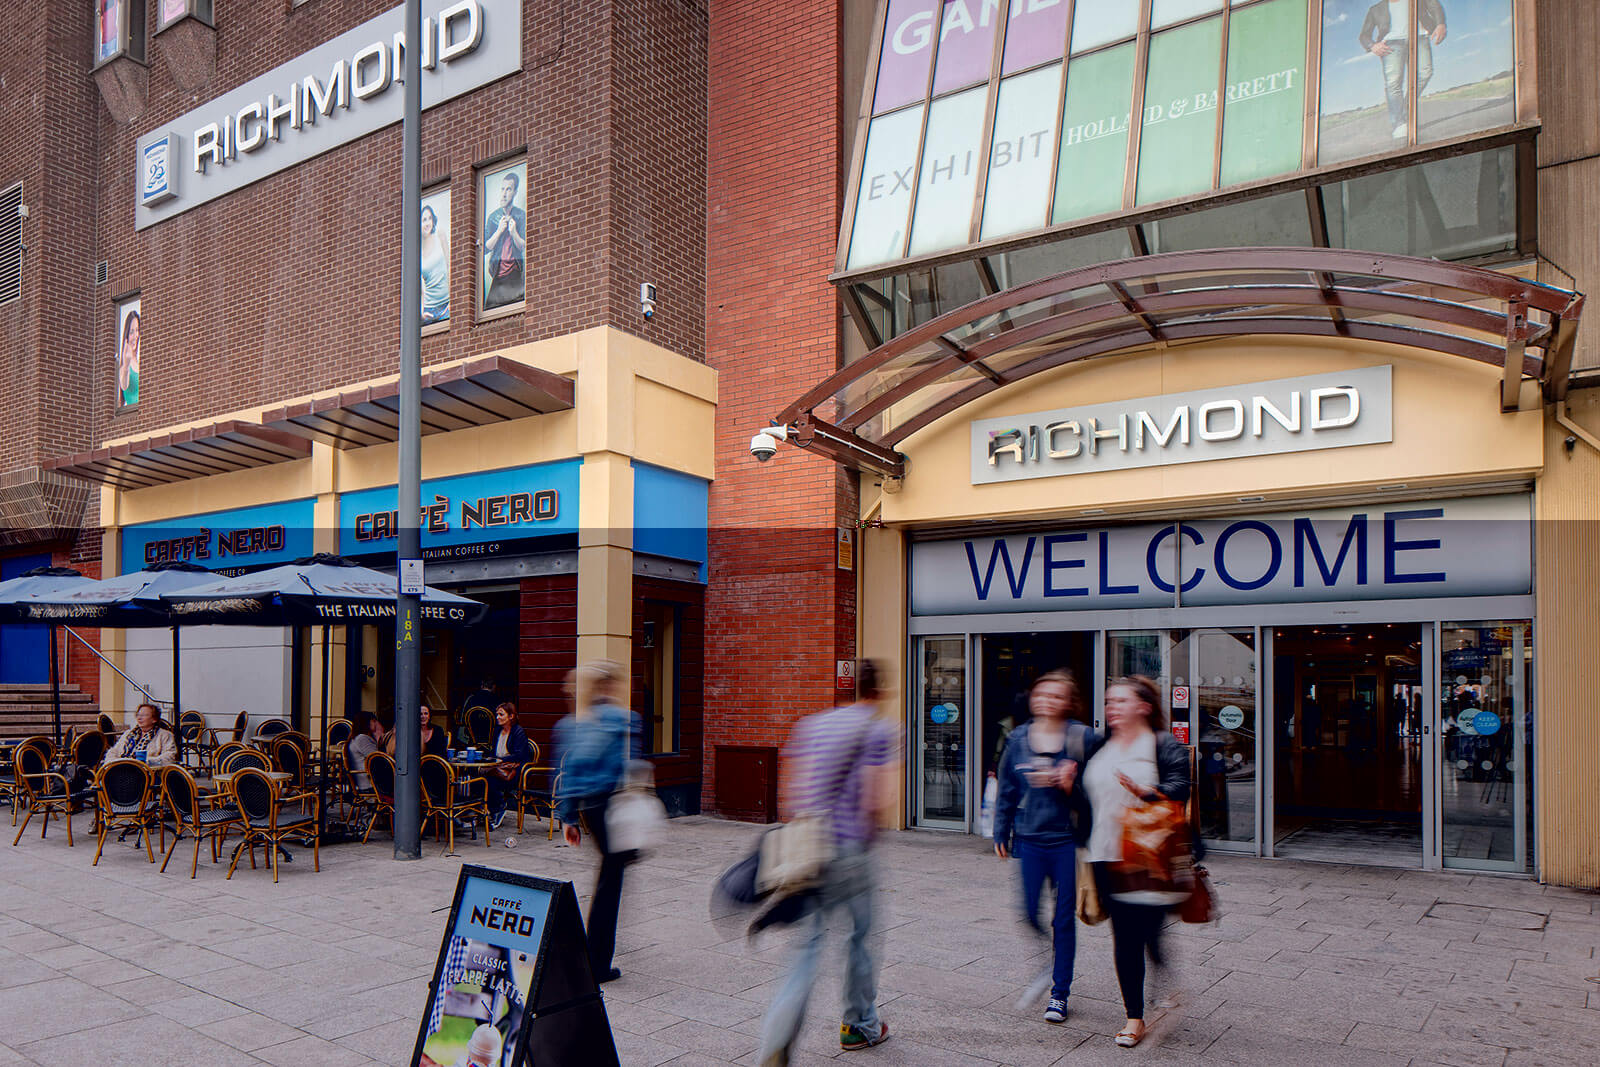 Richmond Shopping Centre, Londonderry, Co. Londonderry, BT48 6PE